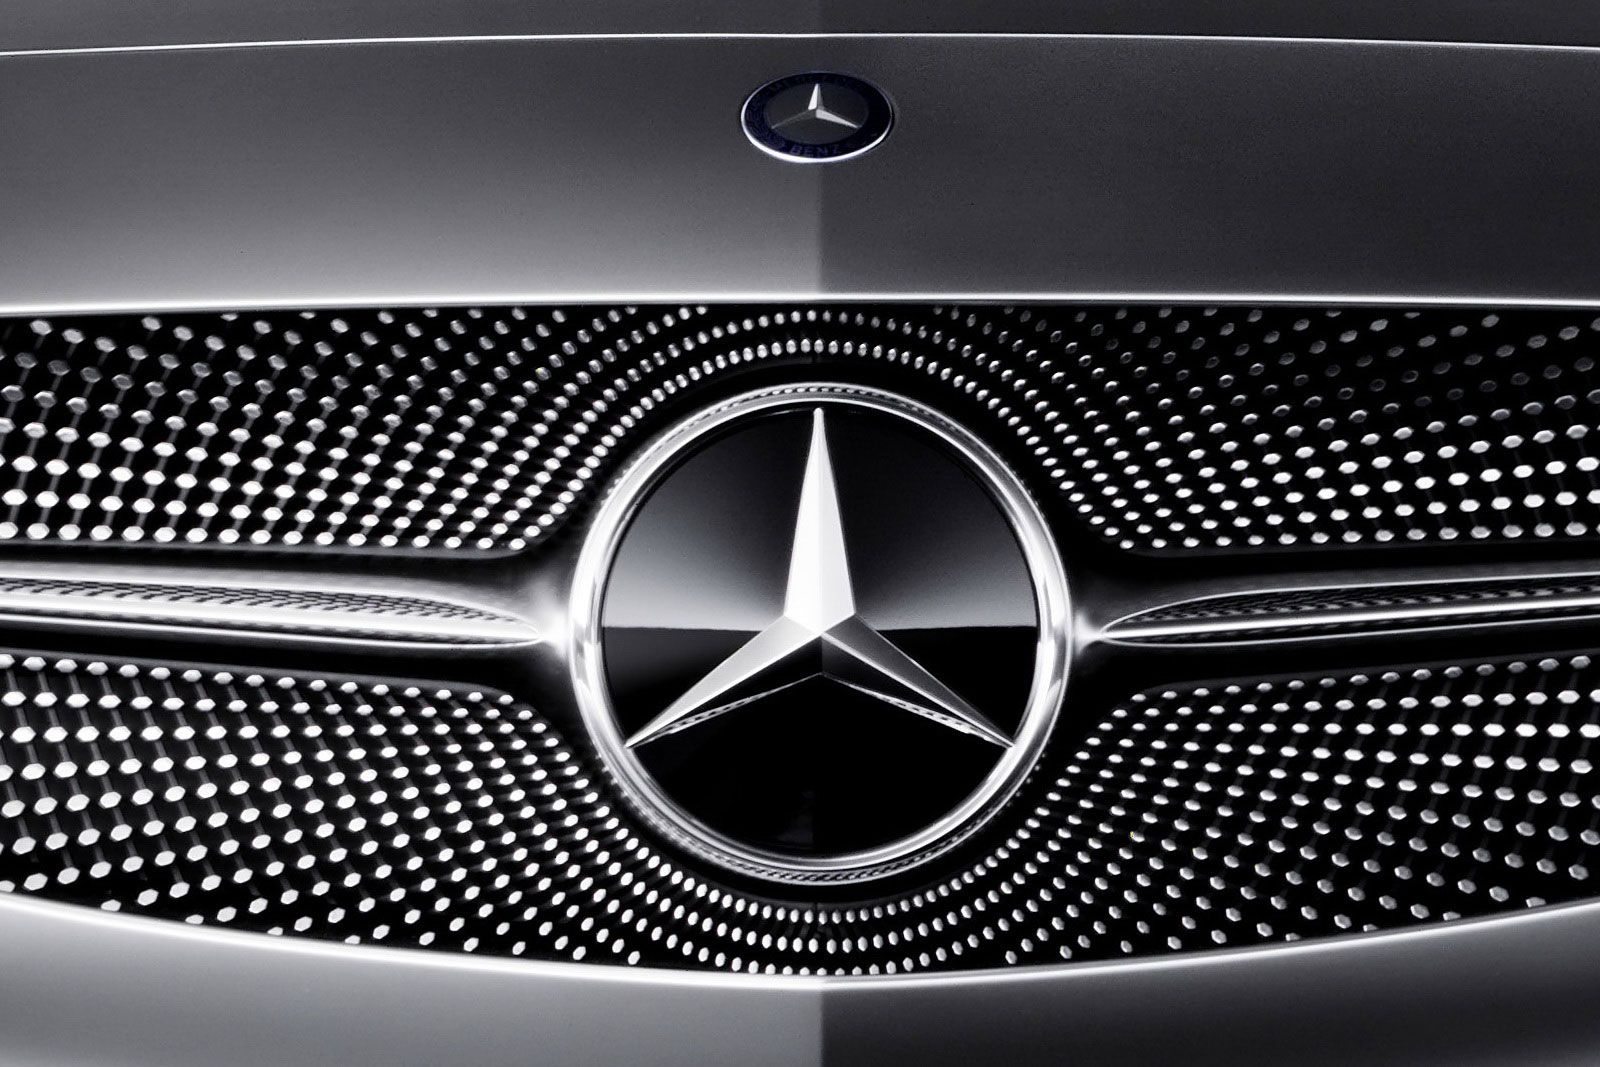 Mercedes repair and service in las vegas nv your for Car parts for mercedes benz